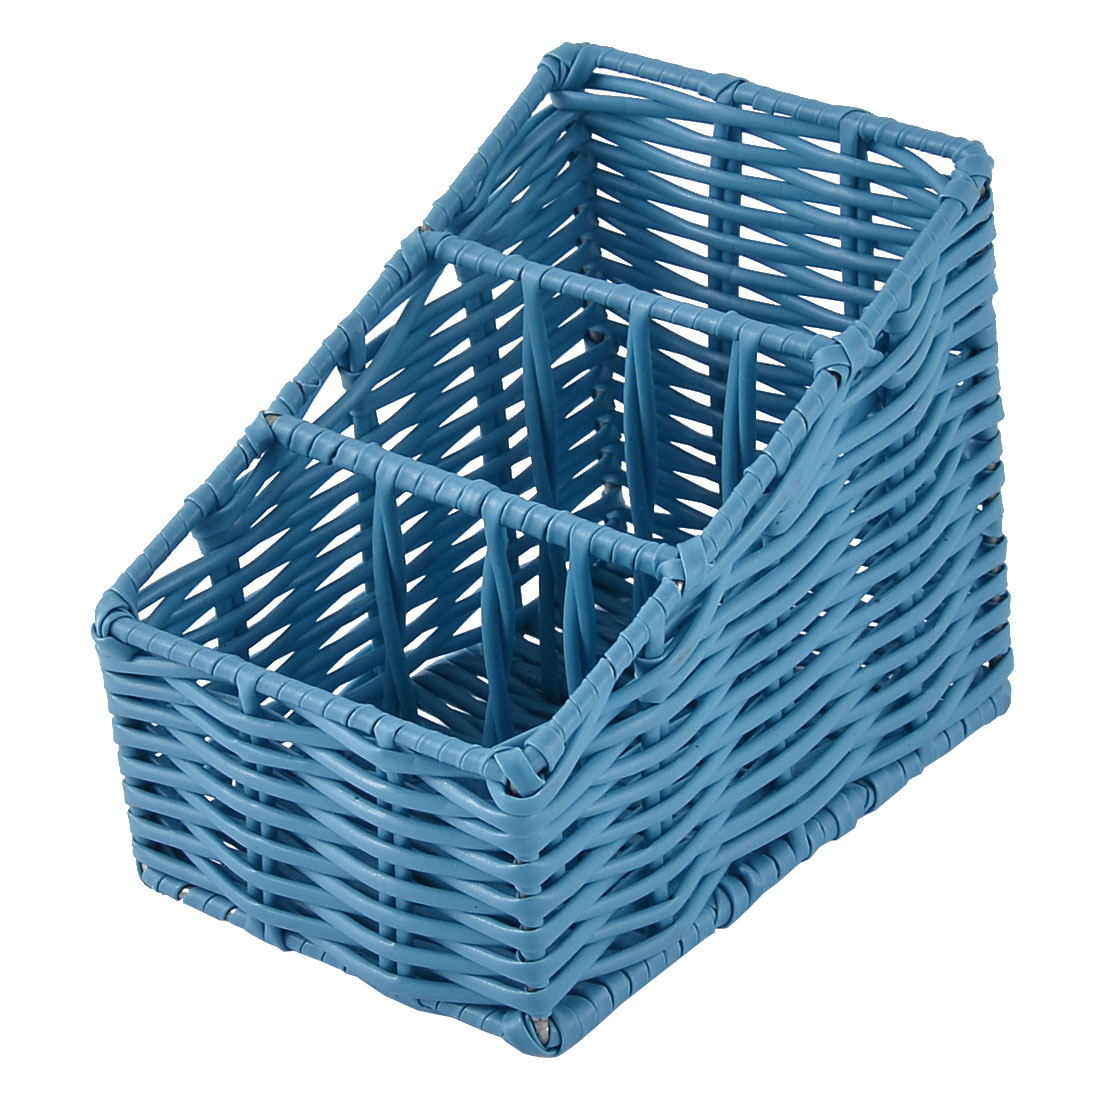 Kitchen Desk Household Plastic 3 Grids Woven Organizer Storage Box Case Basket Blue